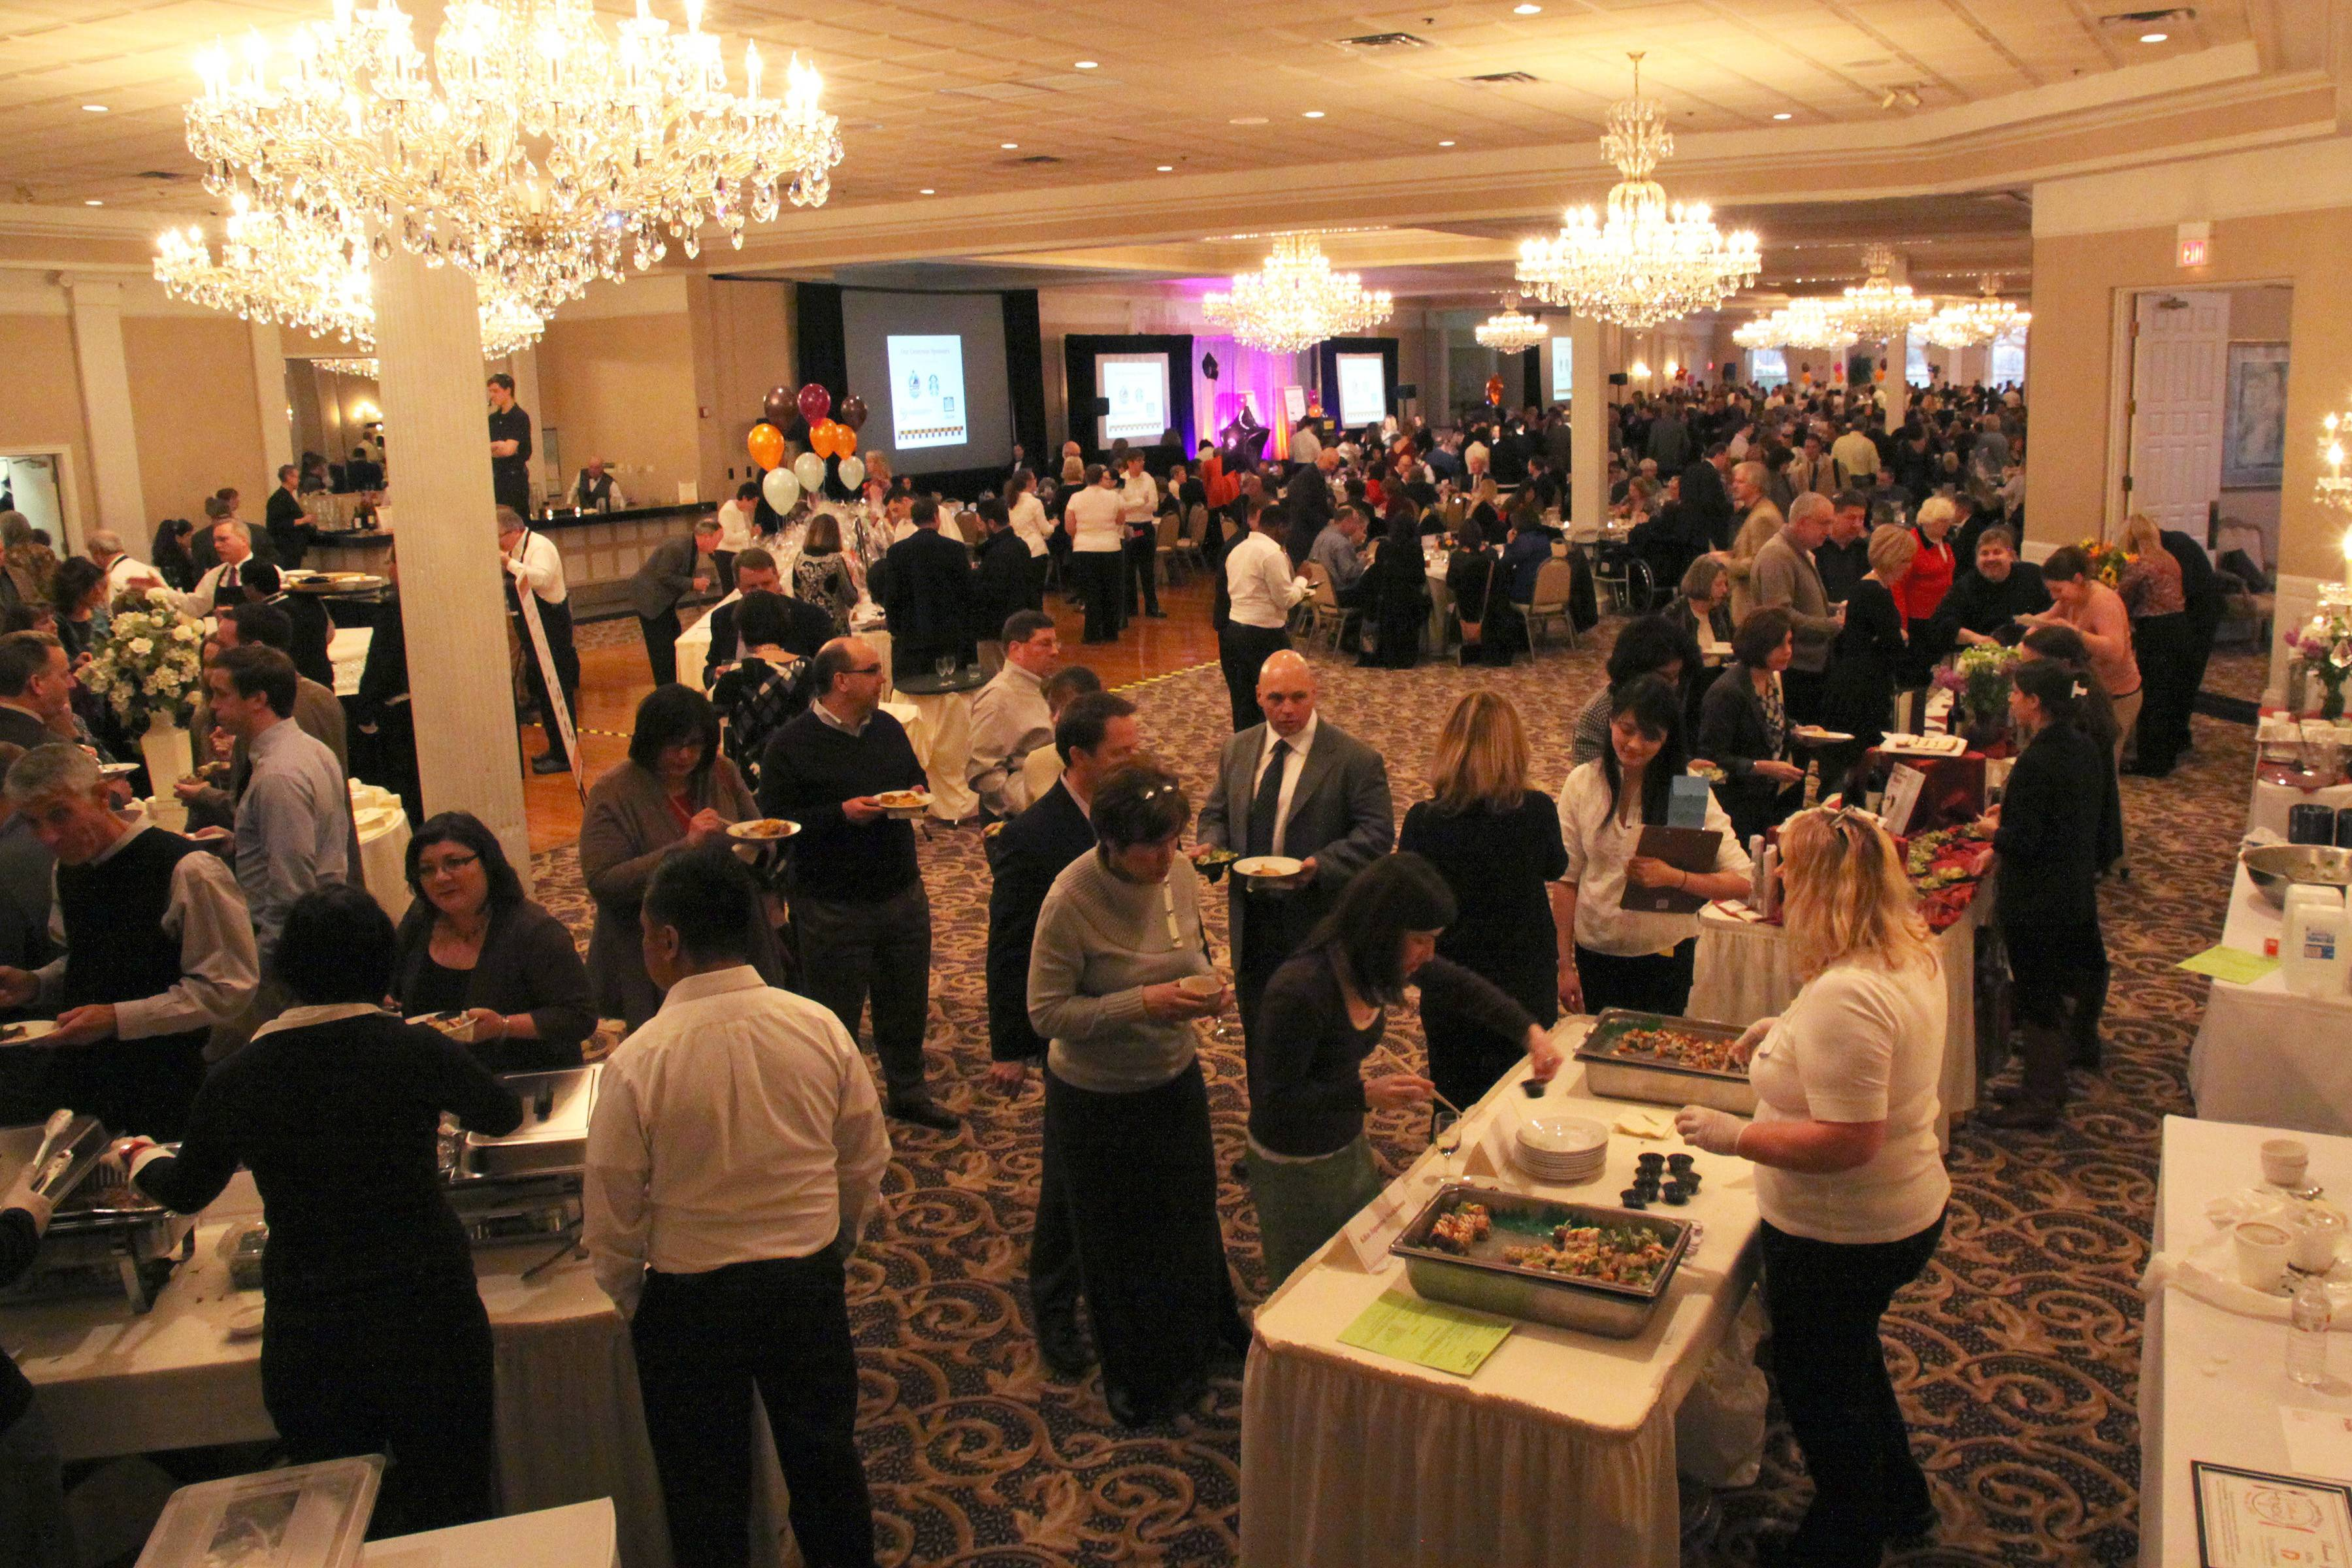 The eighth annual Taste of Hope aims to raise money to help the homeless by supporting the programs of DuPage PADS.